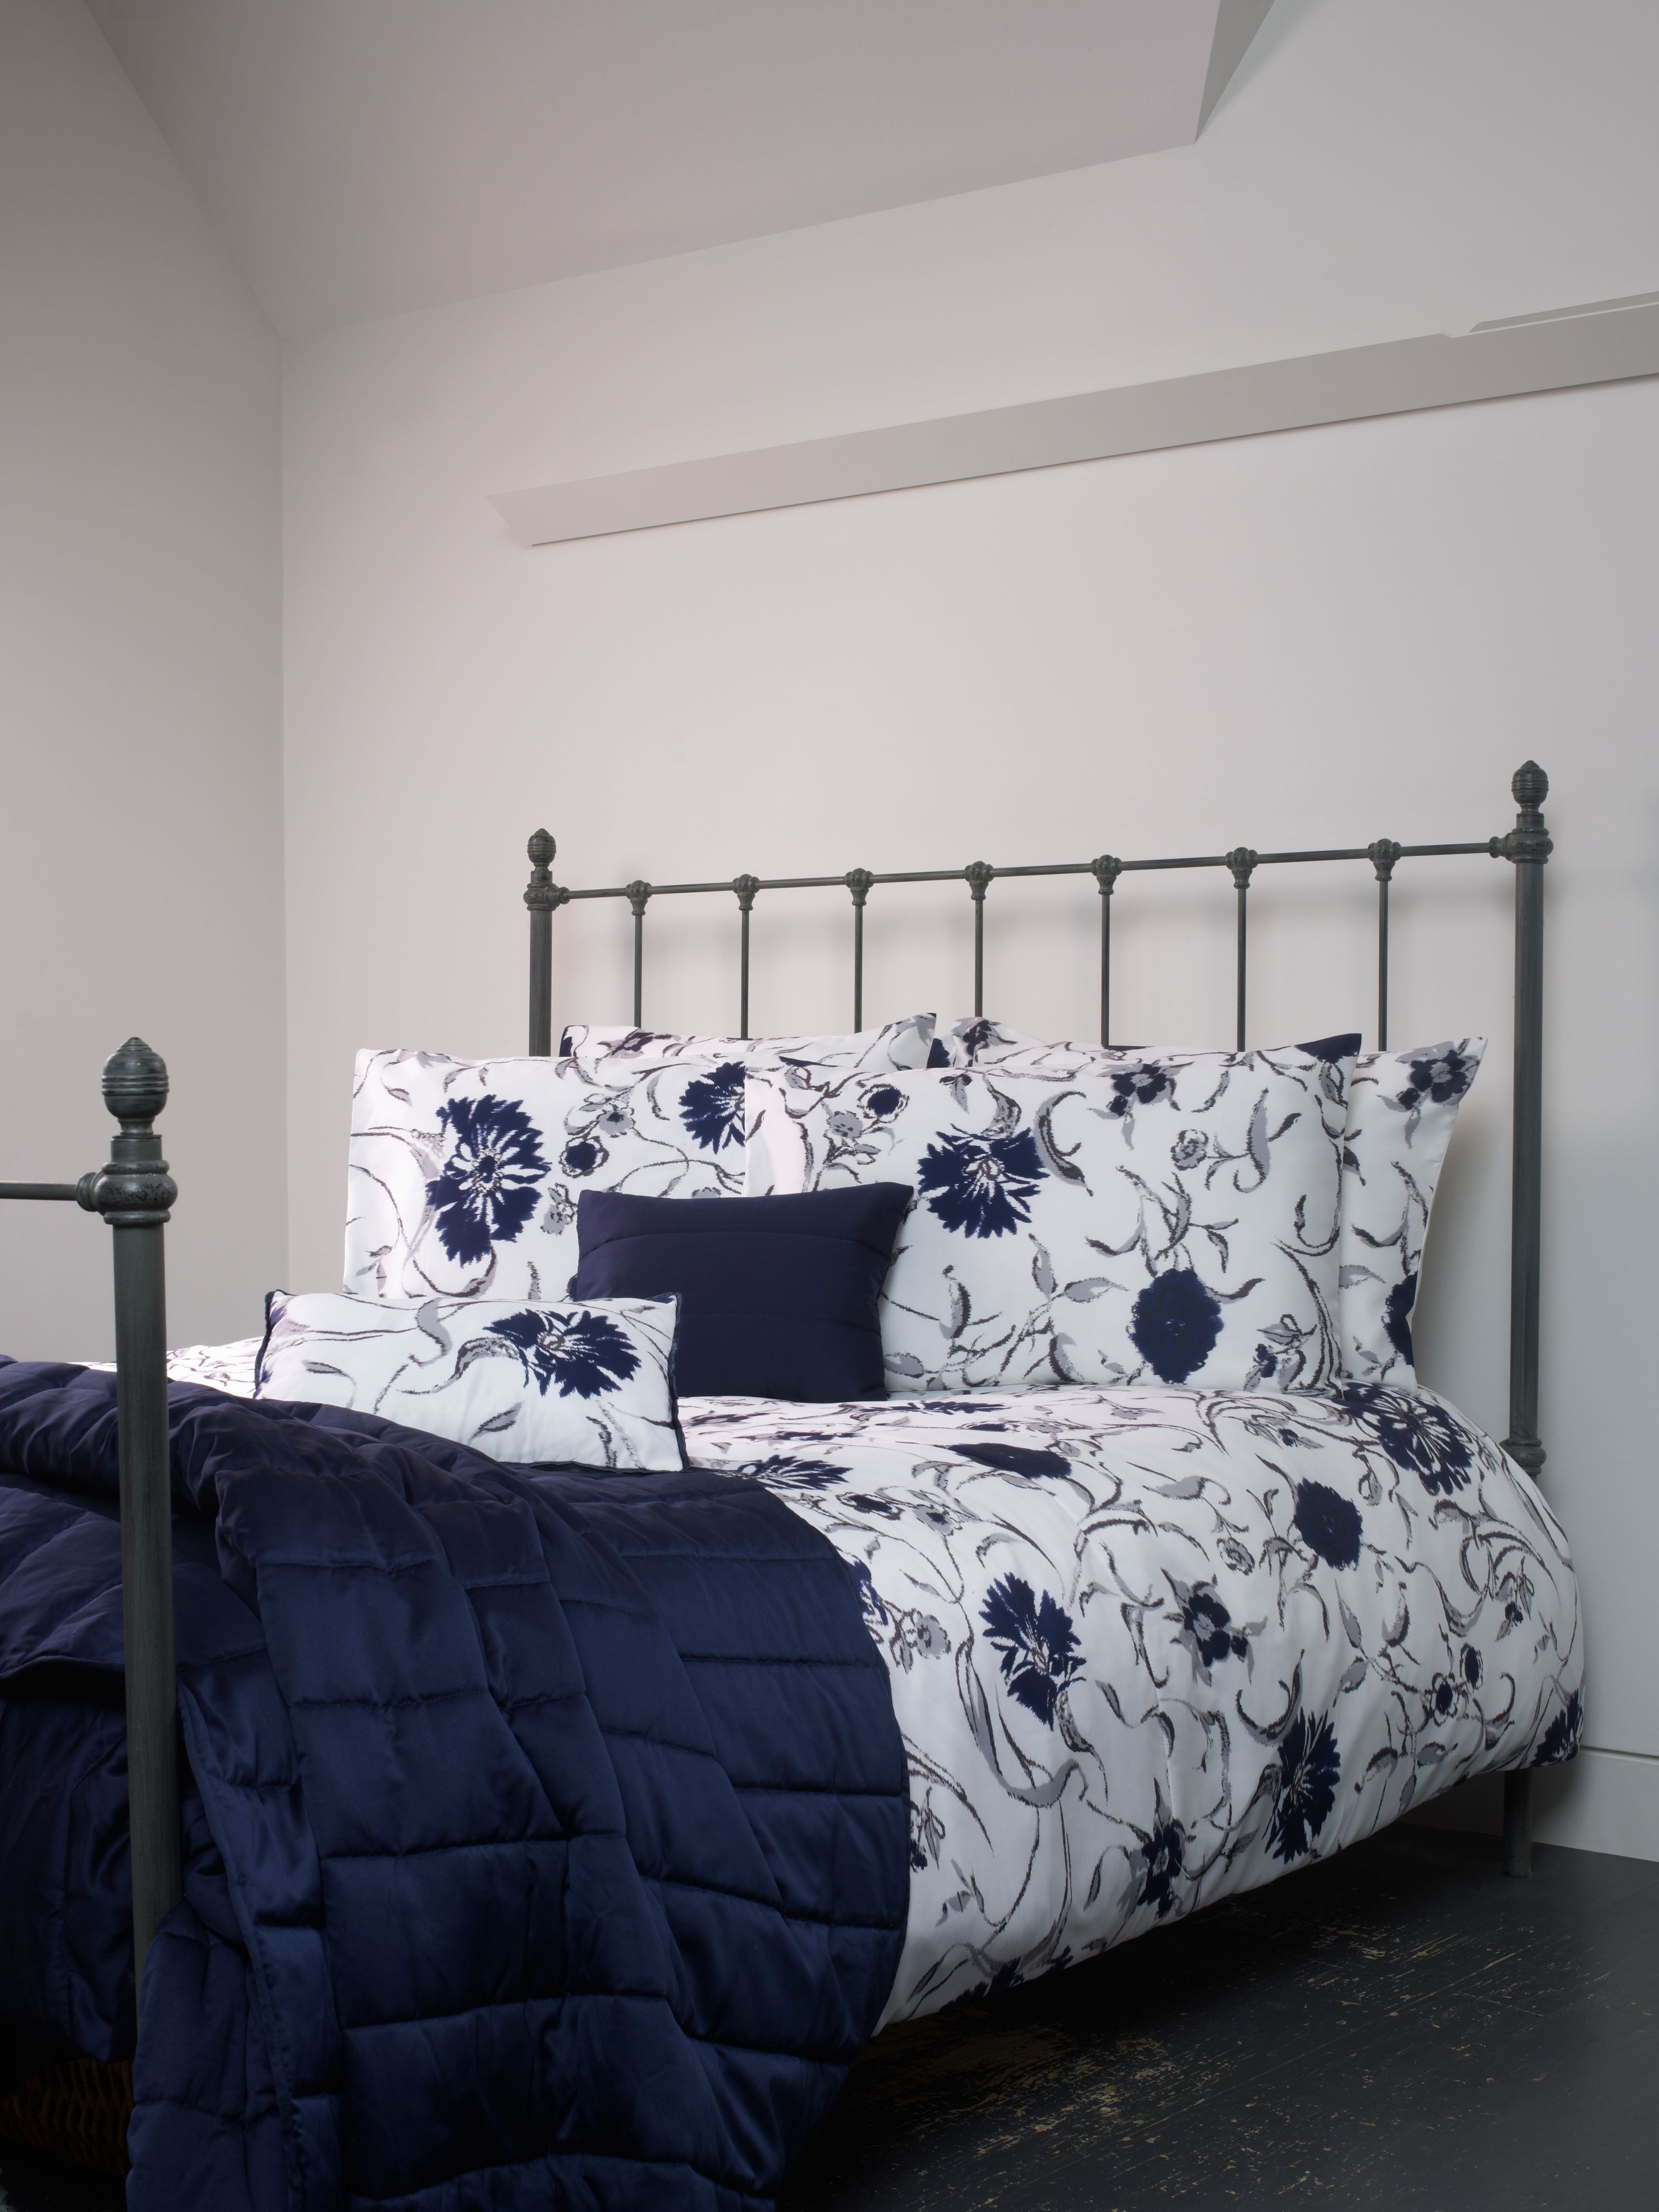 Broadway bed linen in navy